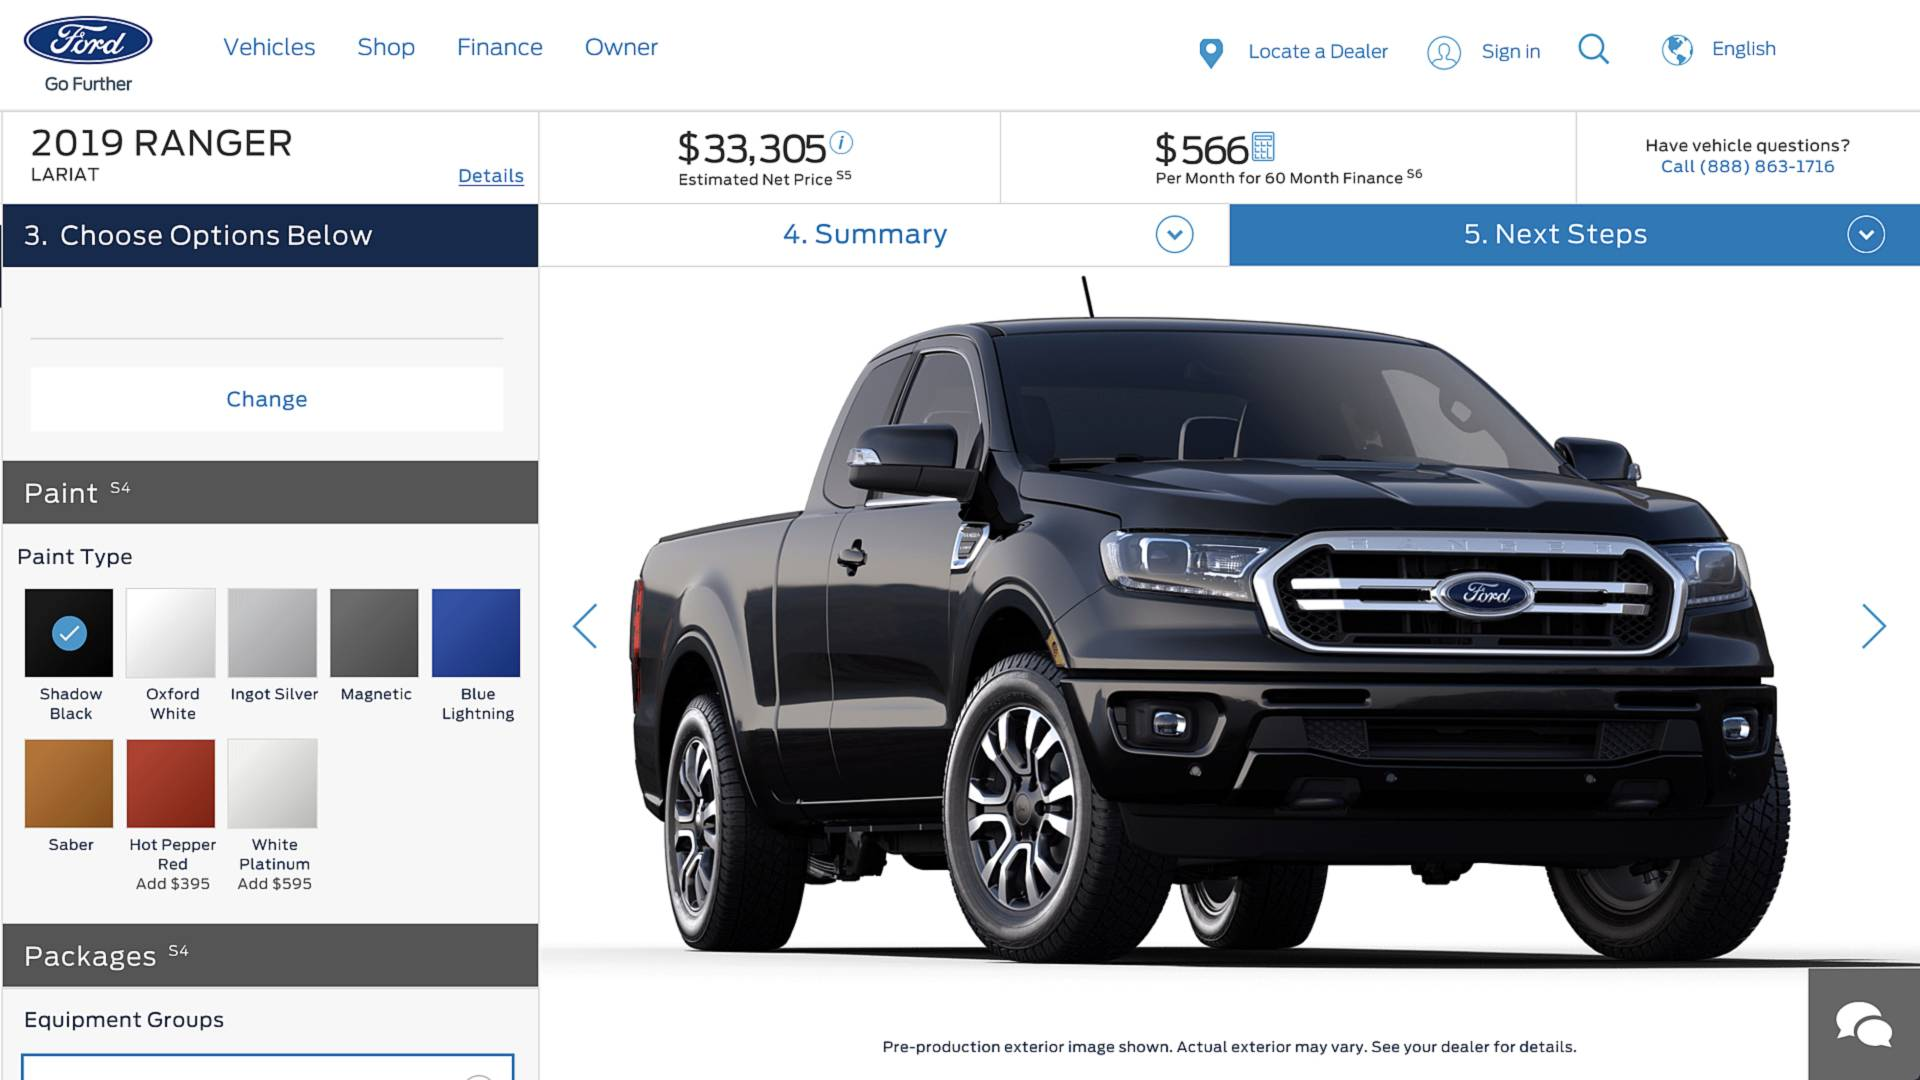 Ford Fayetteville Nc >> 2019 Ford Ranger Spied in the U.S.! - Page 5